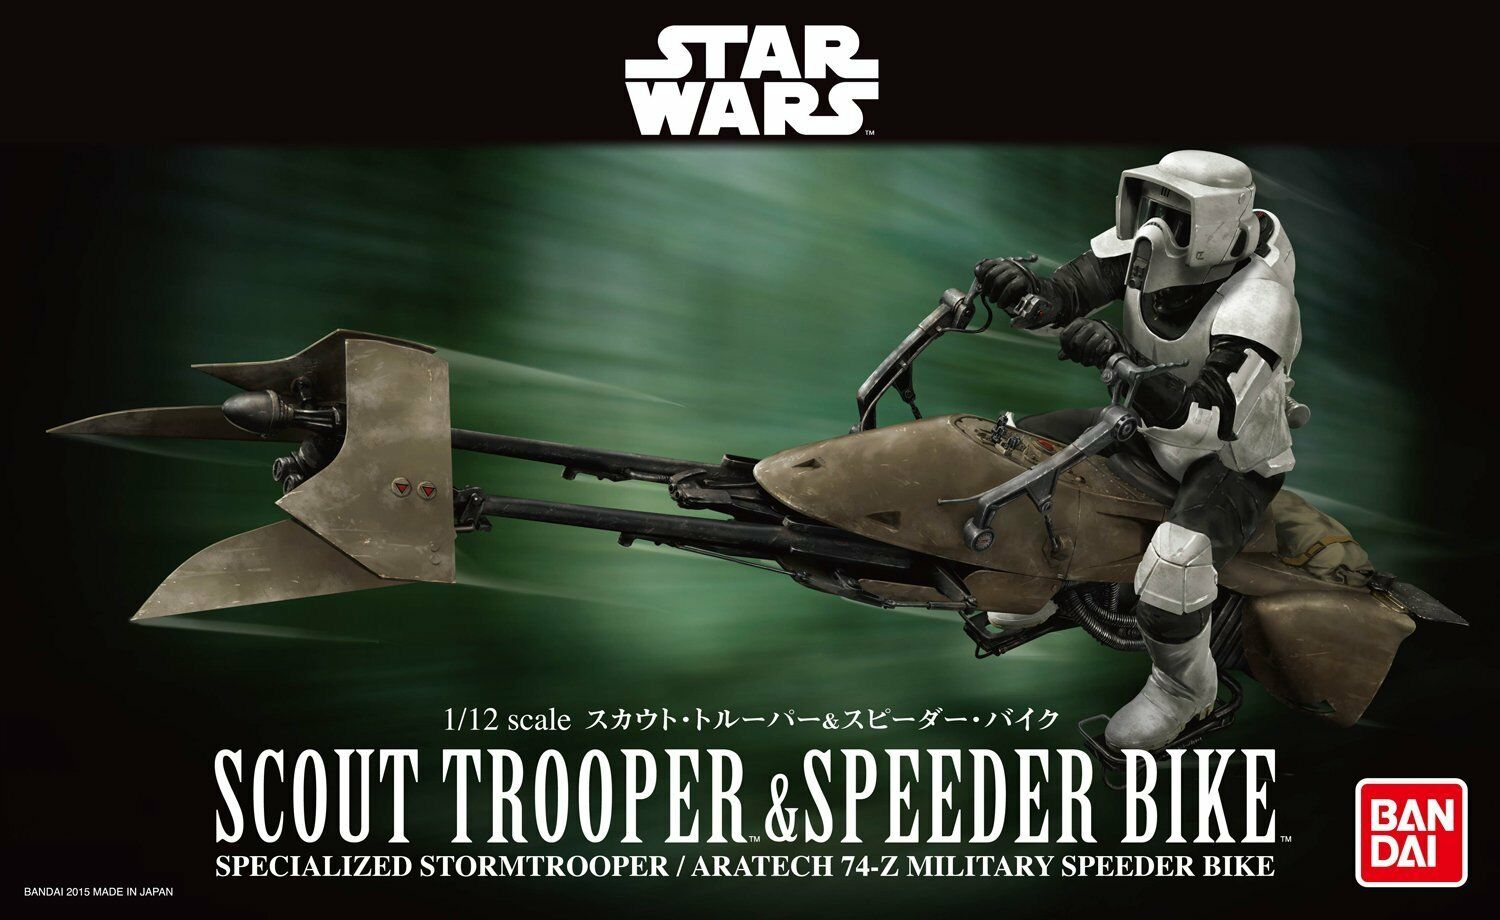 BANDAI Star Wars SCOUT SCOUT SCOUT TROOPER&SPEEDER BIKE 1 12 Platic model 1950c8